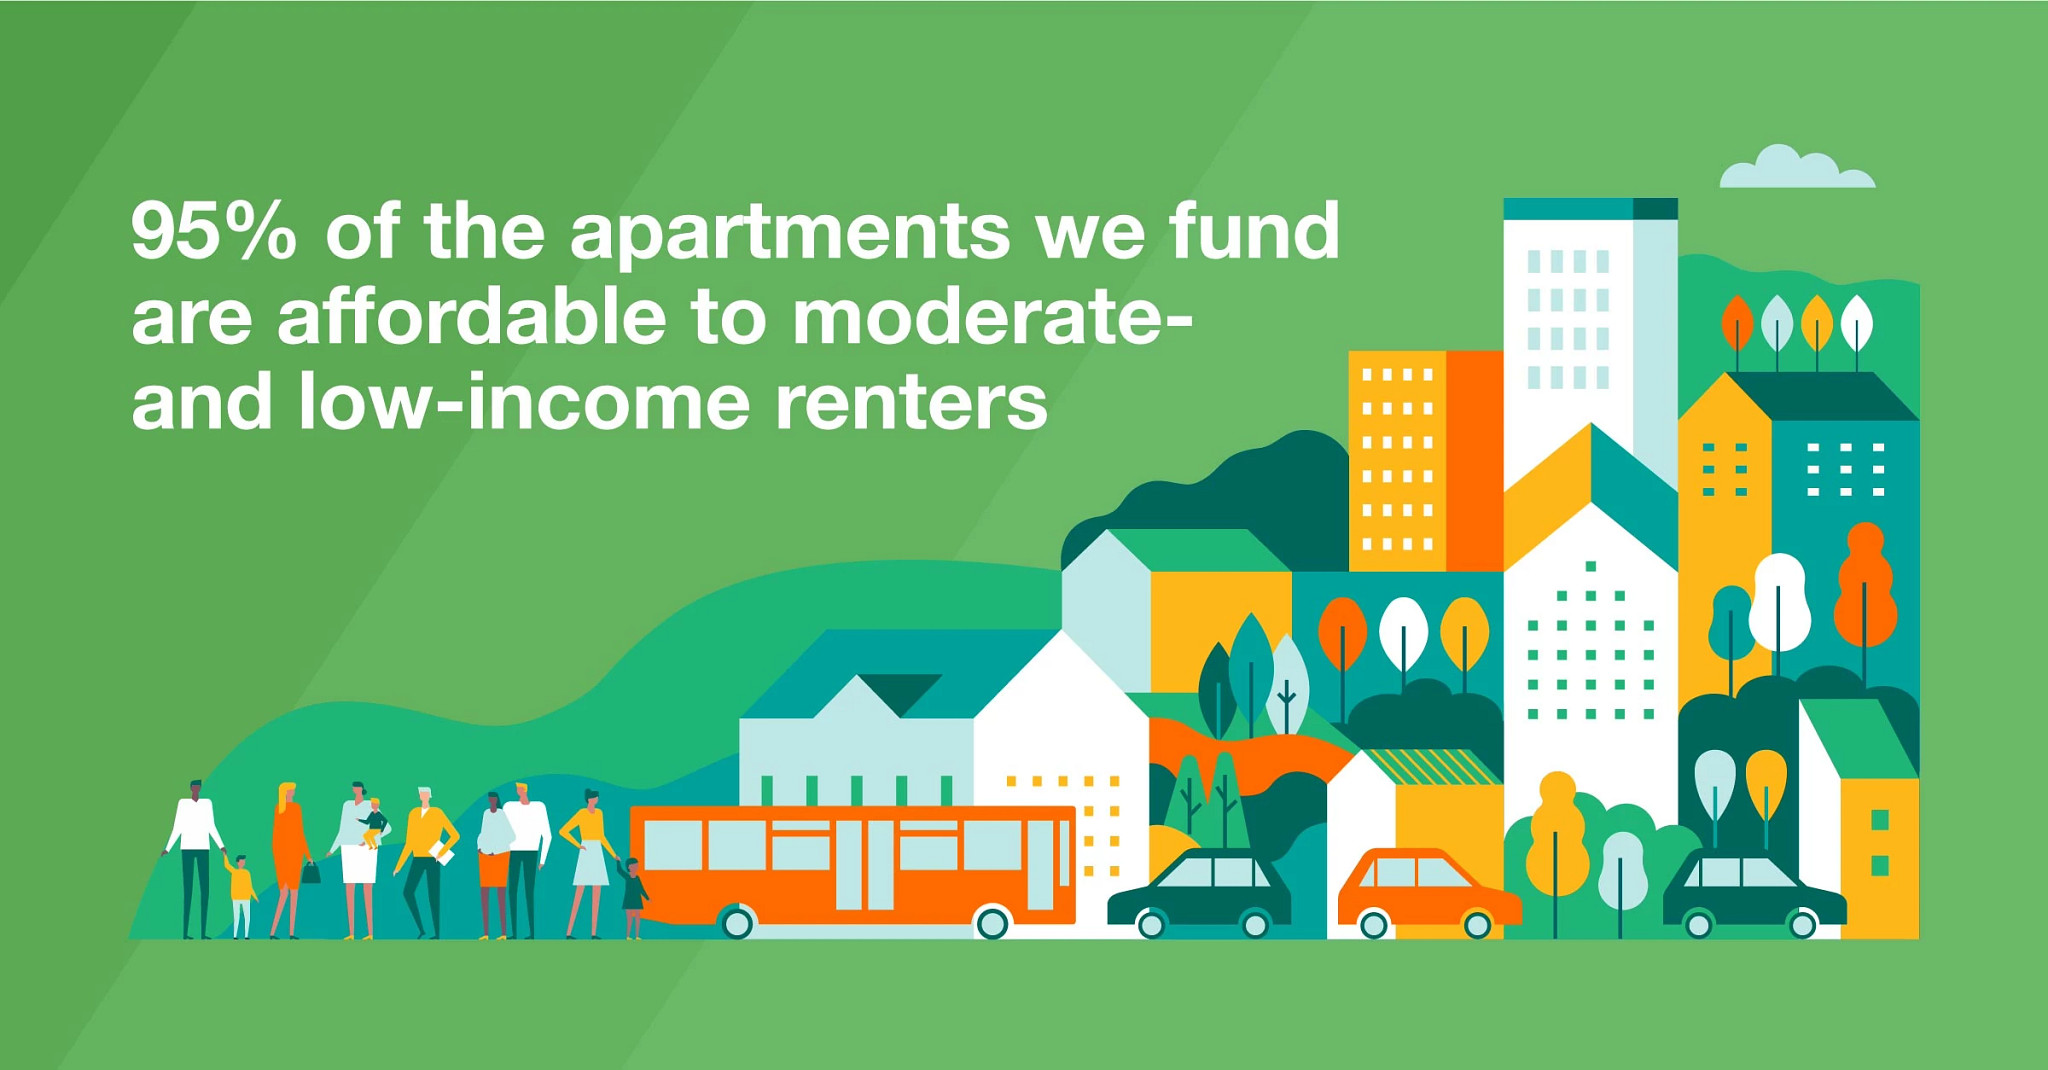 95% of the apartments we fund are affordable to moderate- and low-income renters.